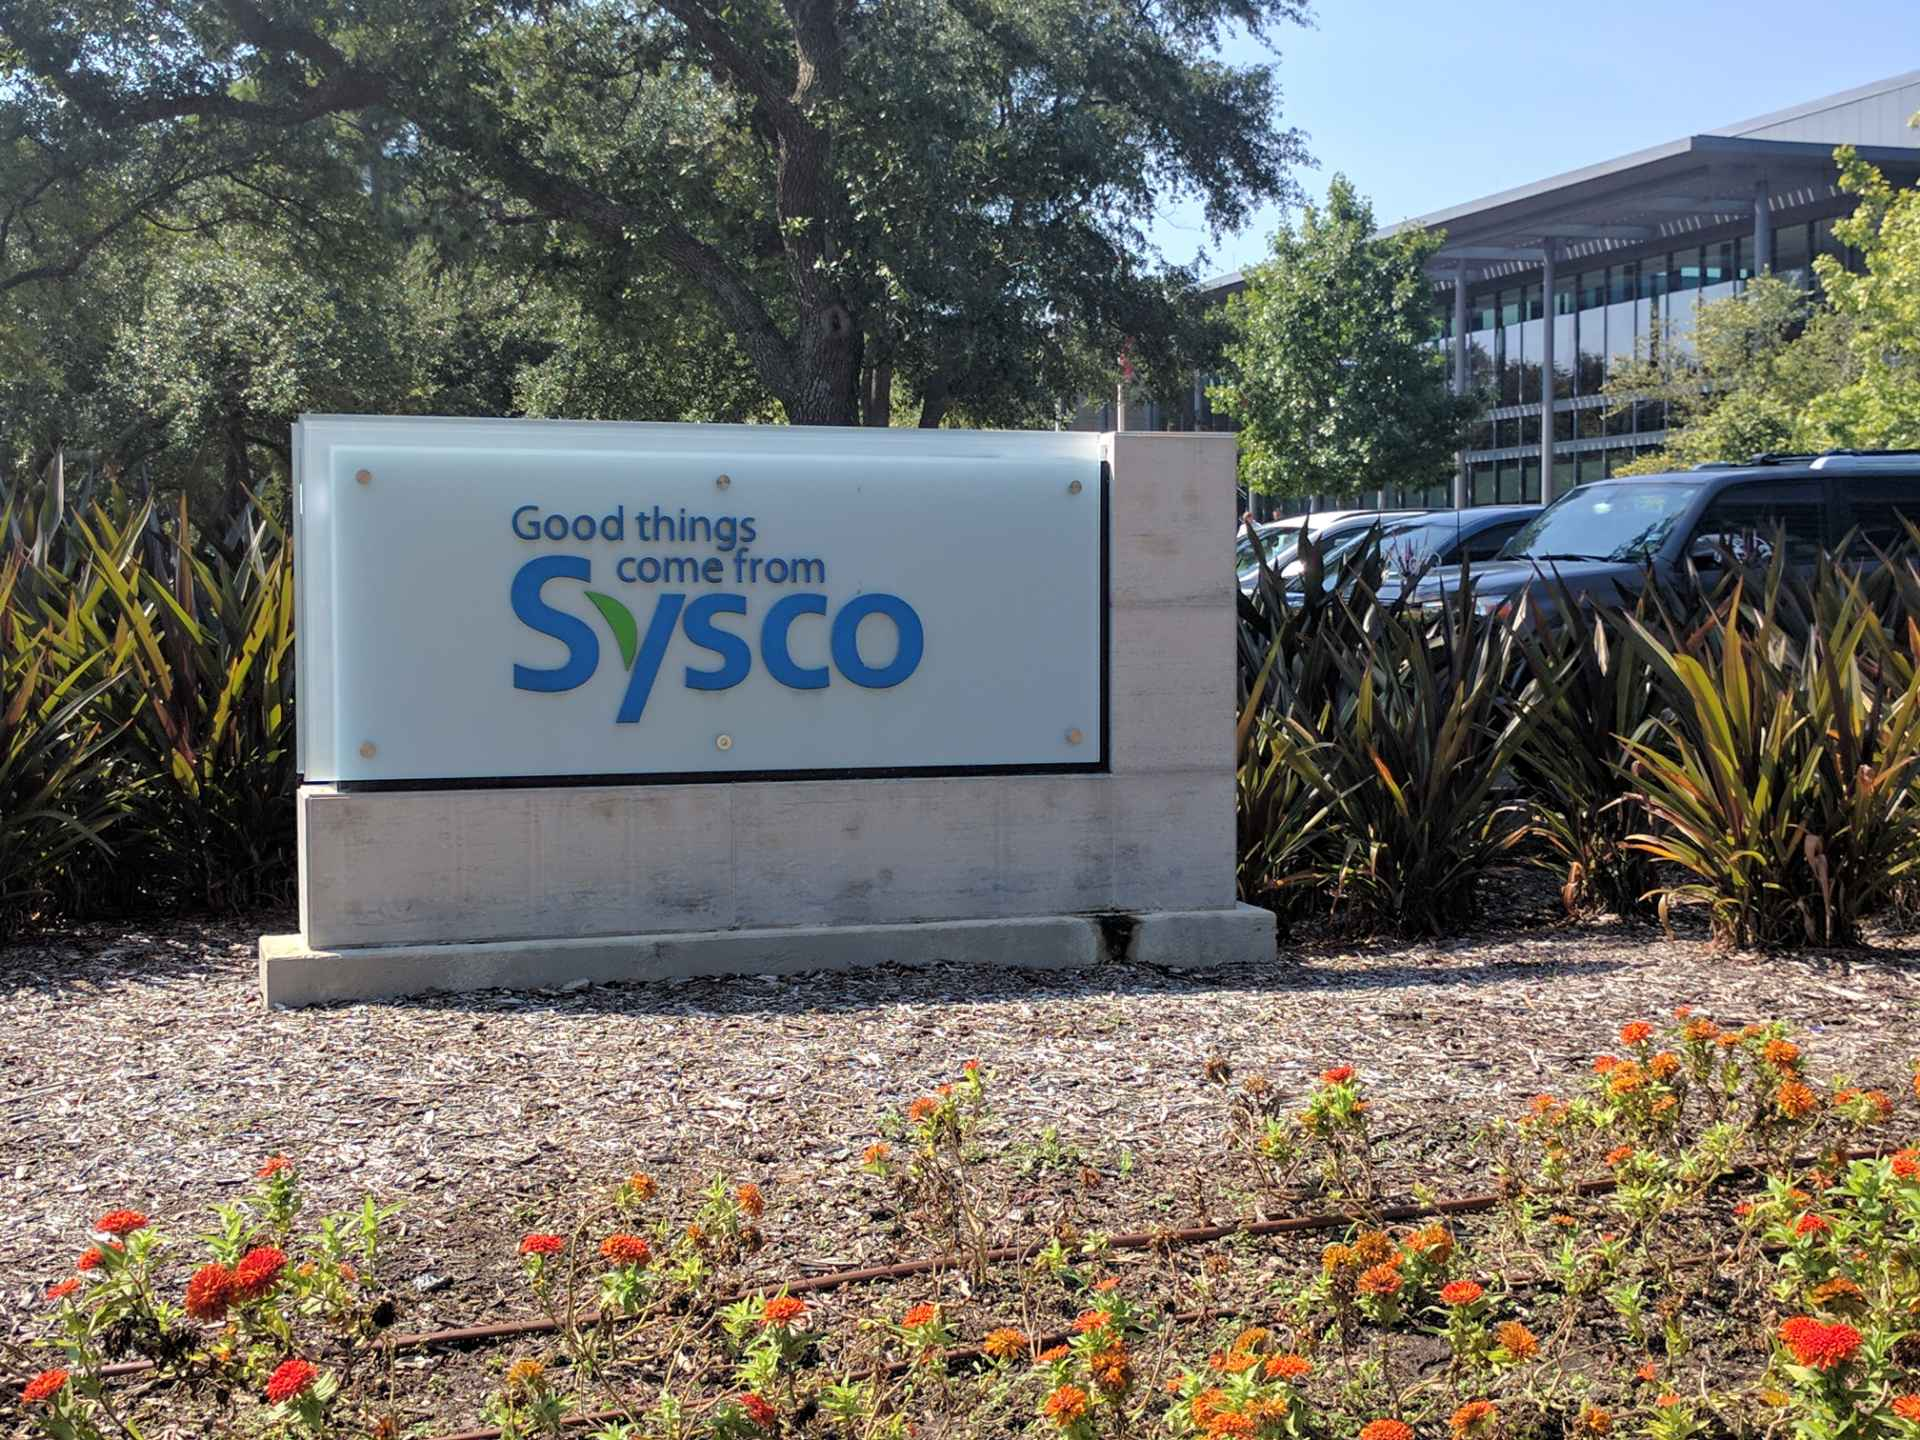 Entrance to Sysco's corporate headquarters in Houston, Texas.